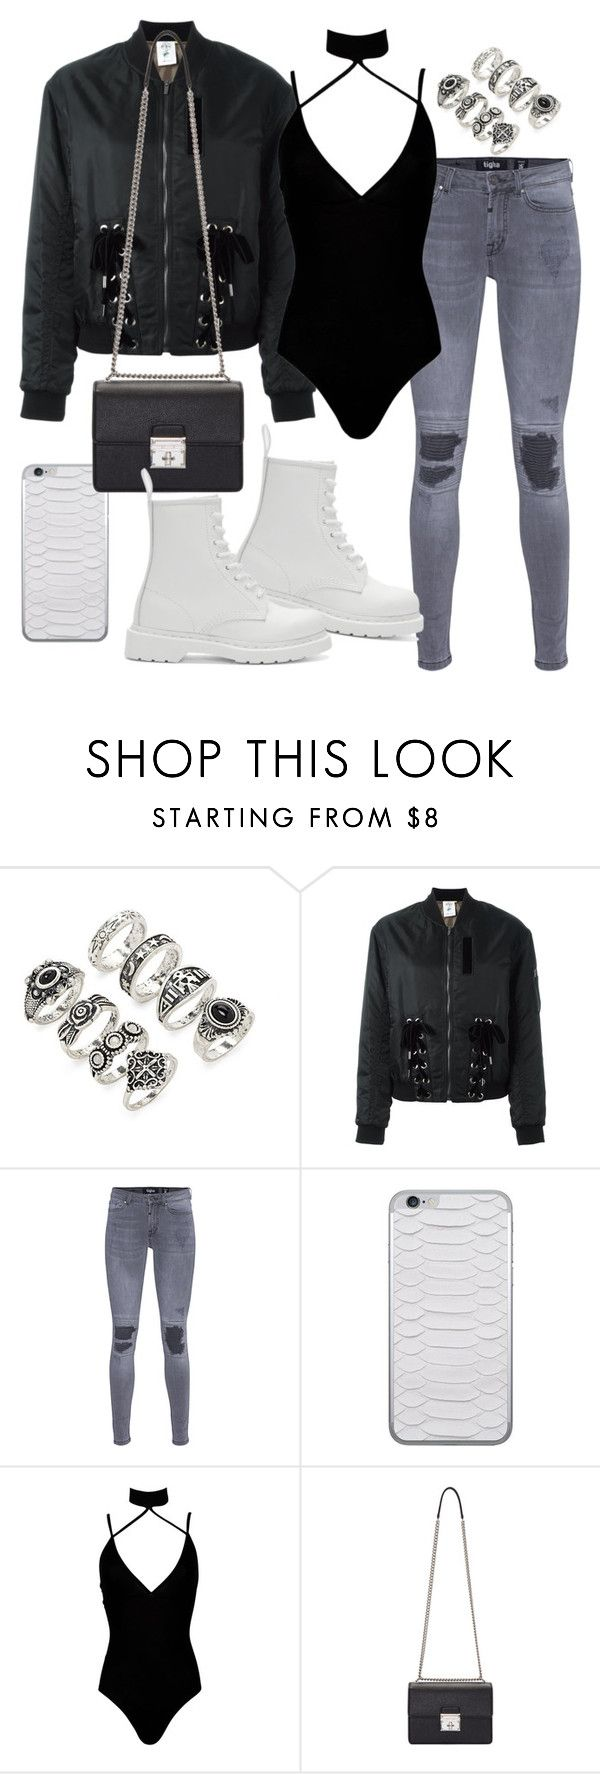 """""""Untitled #2274"""" by mariie00h ❤ liked on Polyvore featuring Forever 21, Steve J & Yoni P, TIGHA, Jamie Clawson, Boohoo, Dolce&Gabbana and Dr. Martens"""